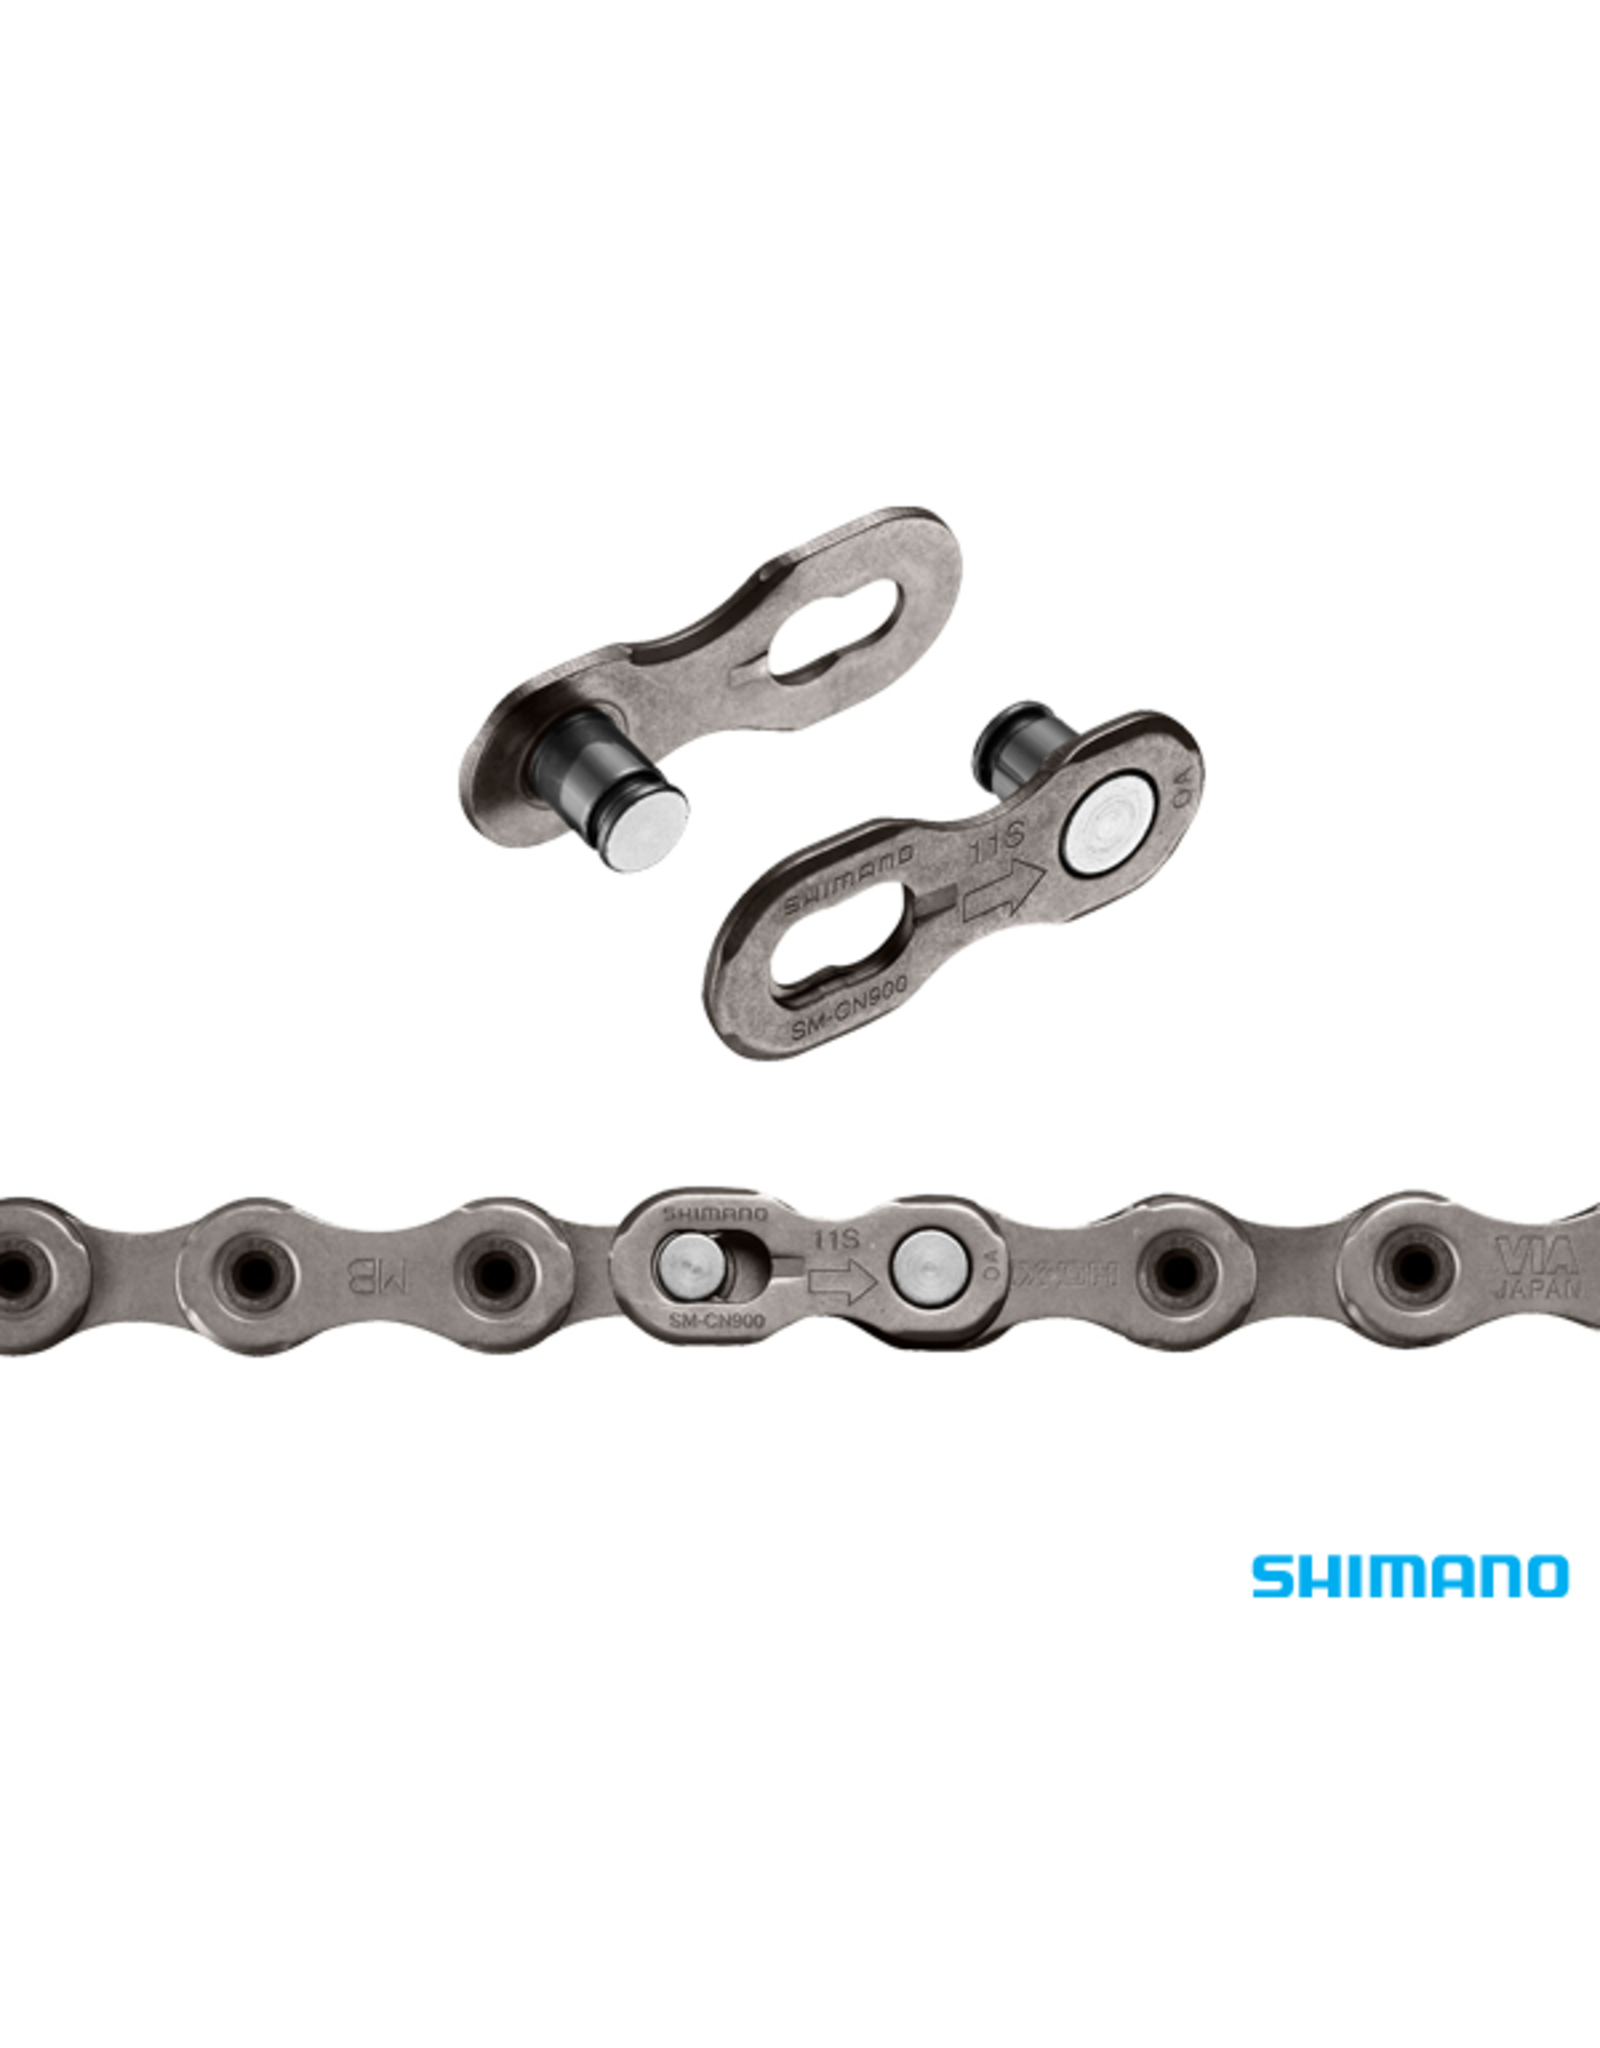 Shimano CHAIN LINK SHIMANO CN-900 QUICK LINK 11 SPEED 2 PAIRS